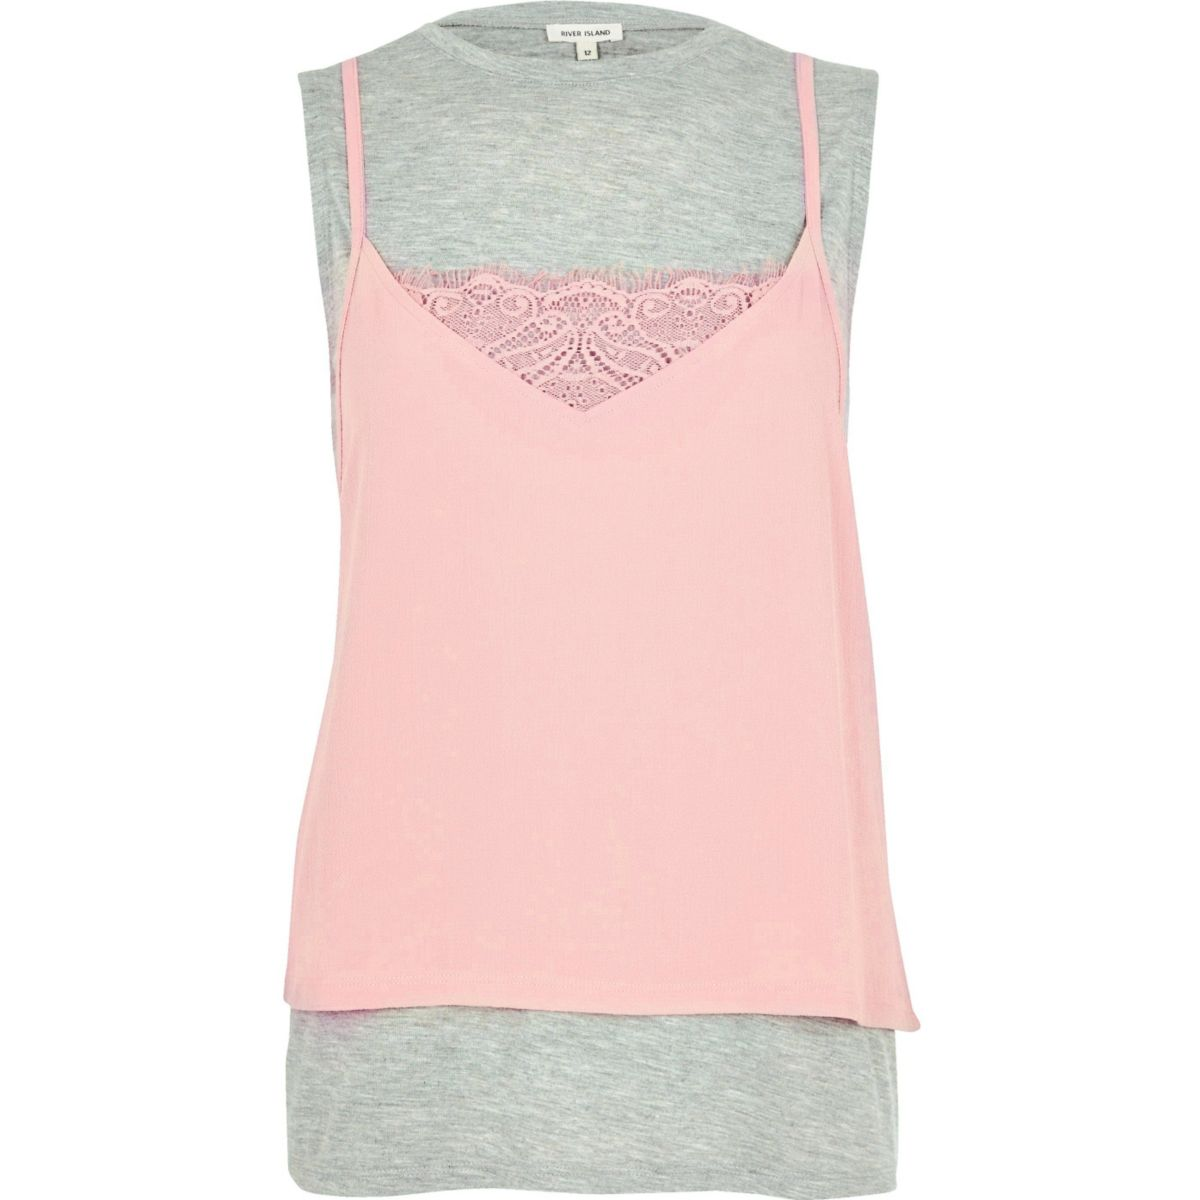 Grey 2 in 1 cami top